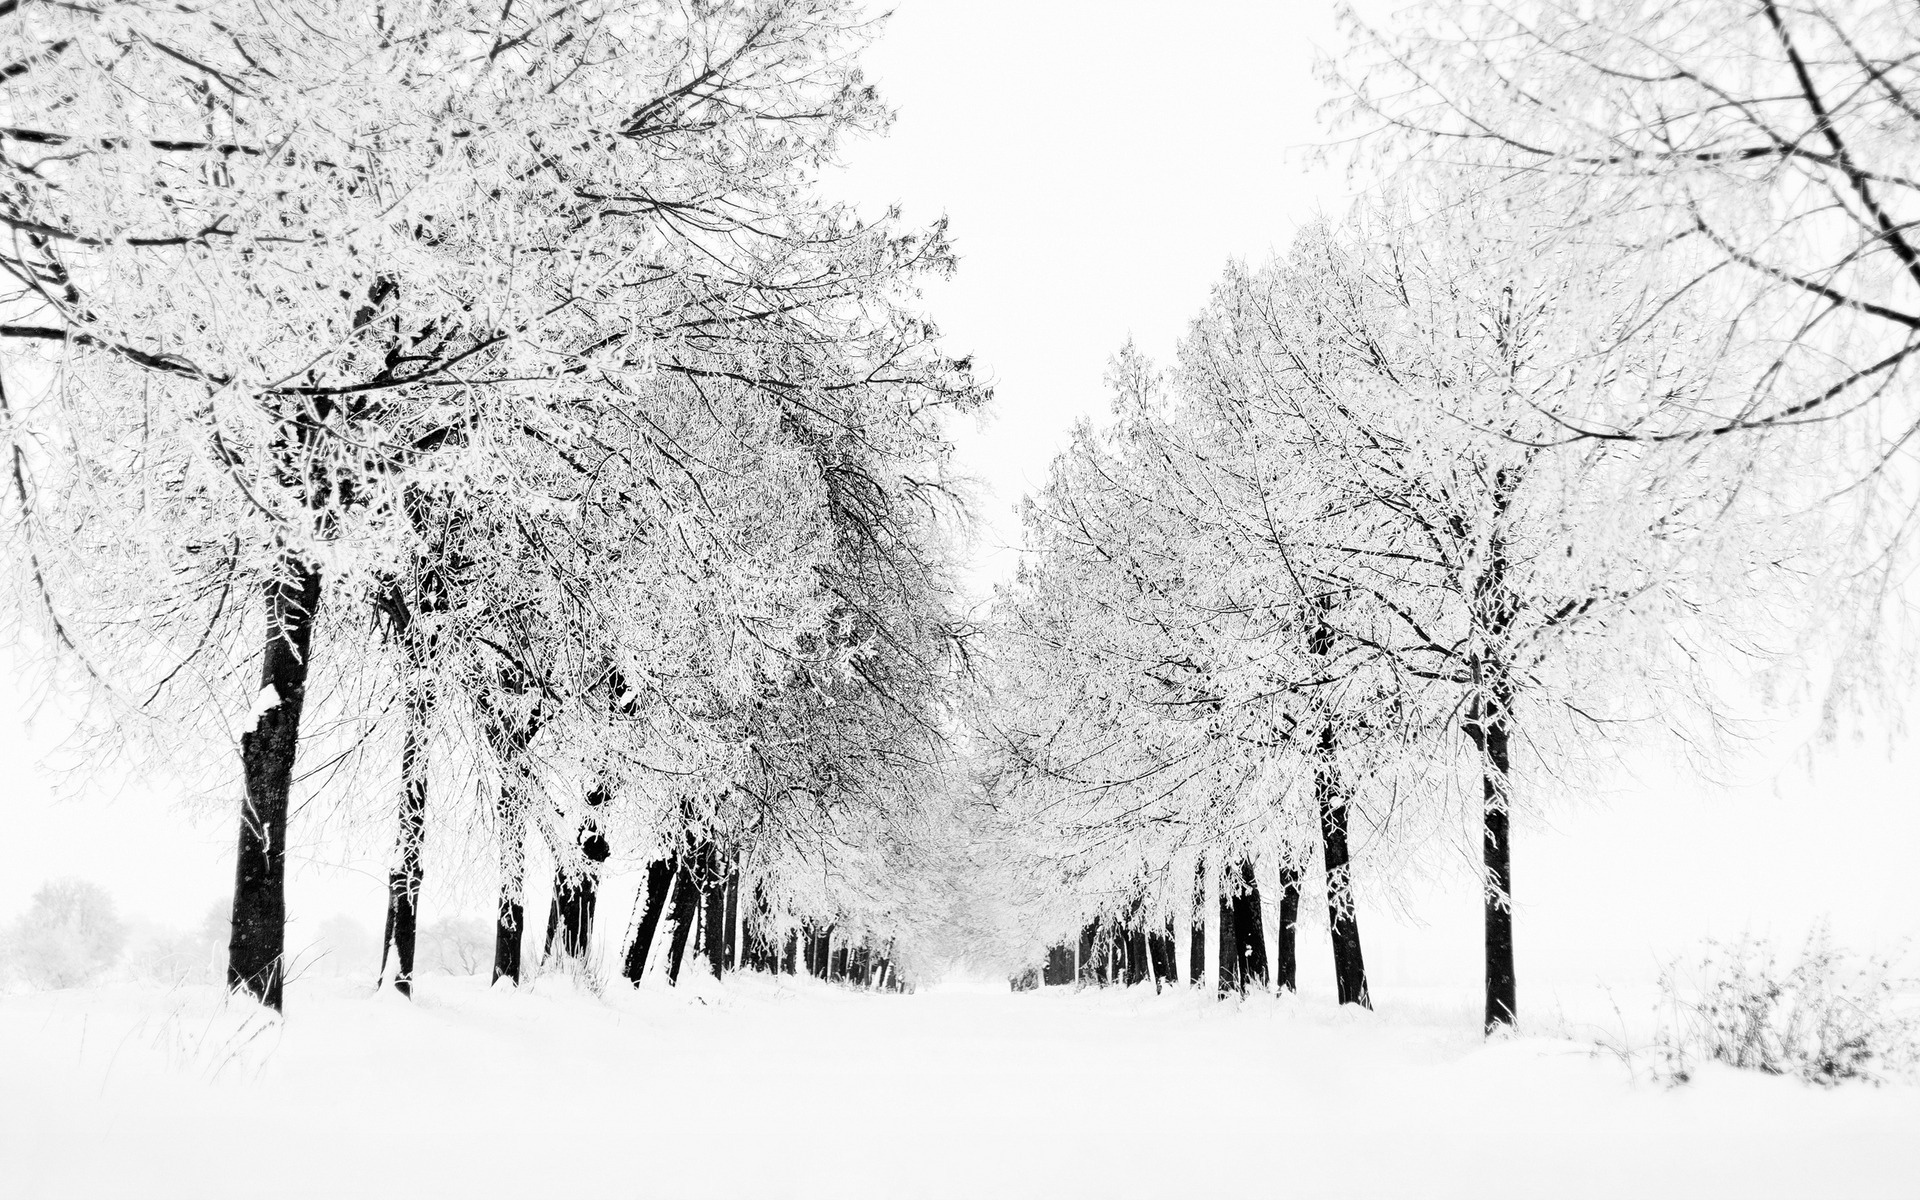 winter winter wallpaper view snow blizzard trees nature